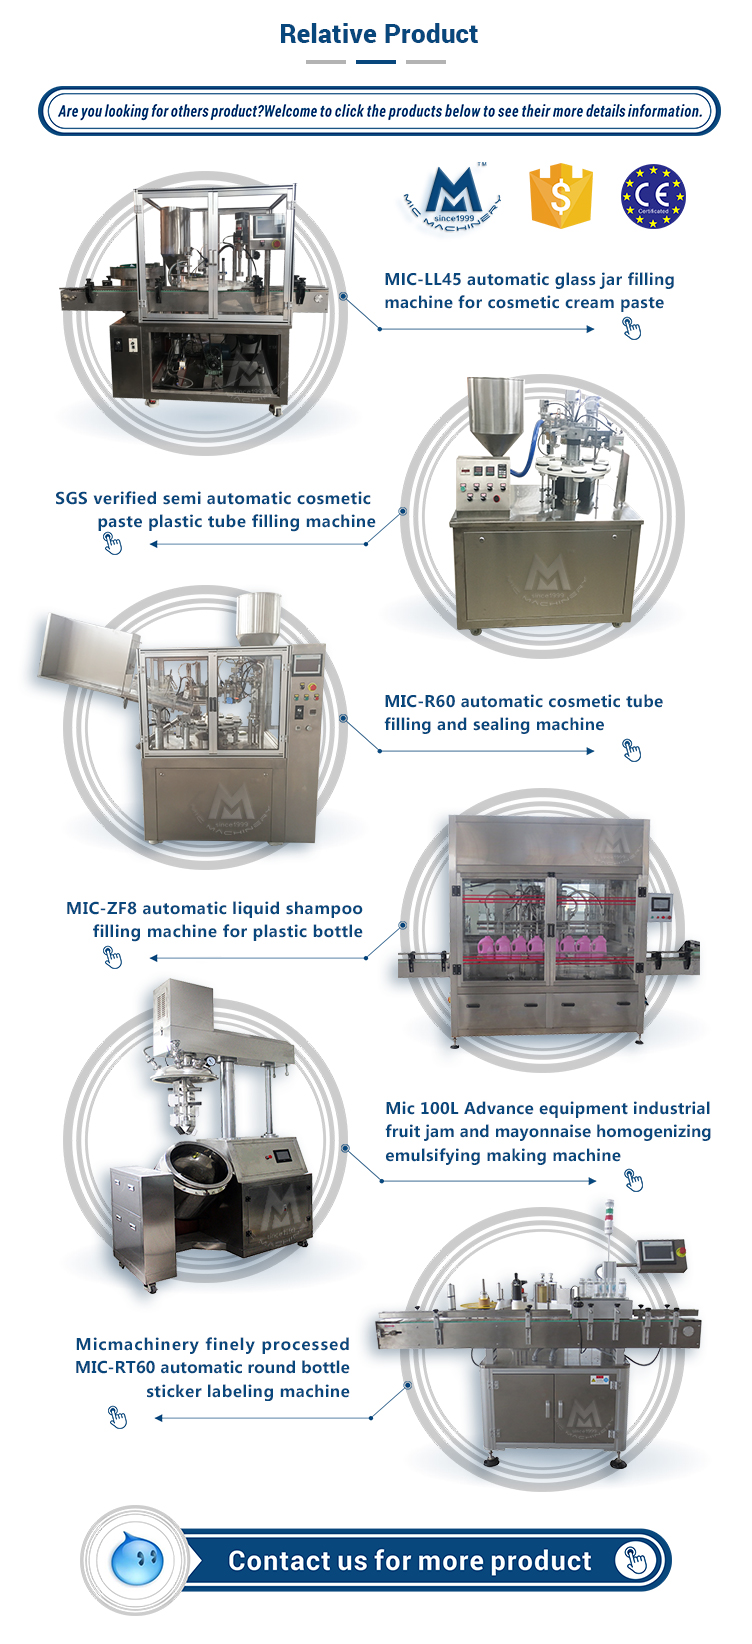 MIC-R45 automatic toothpaste tube filling sealing machine